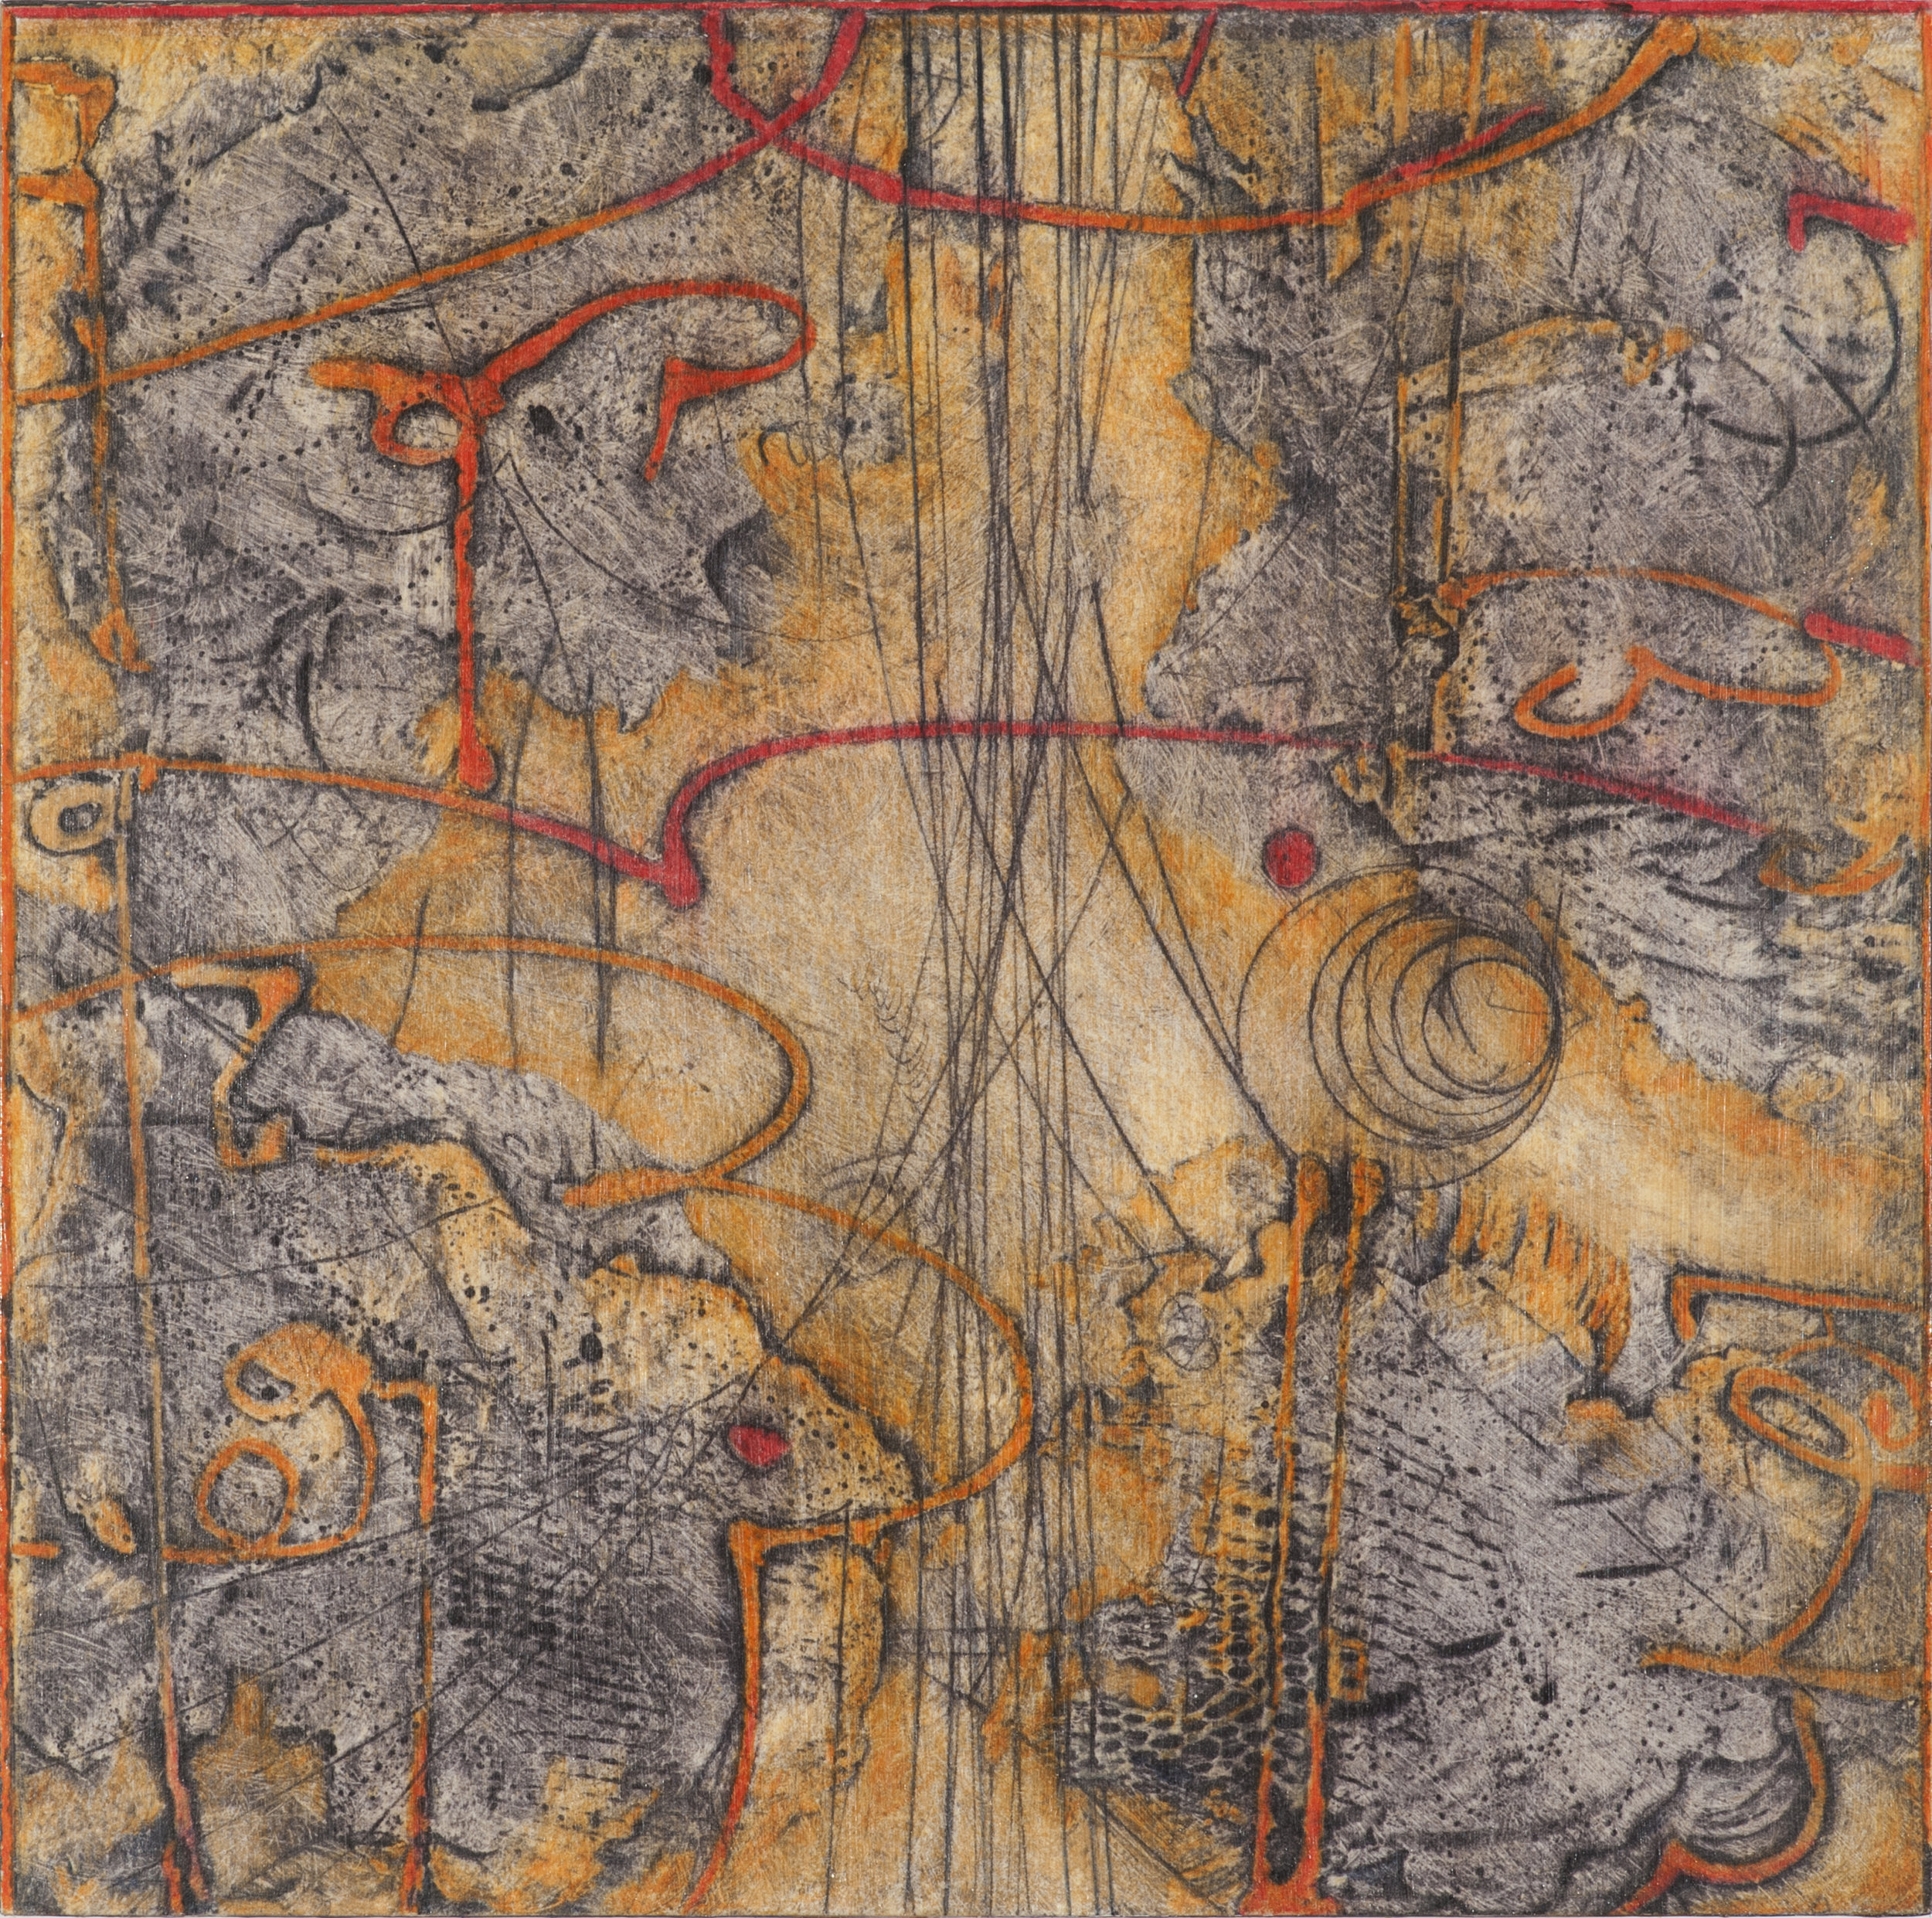 Sigma Self-Energy 2 , encaustic collagraph monoprint, Cretacolor and medium mounted on panel 10 x 10 inches. Available at   Gremillion & Co. Fine Art  , Houston